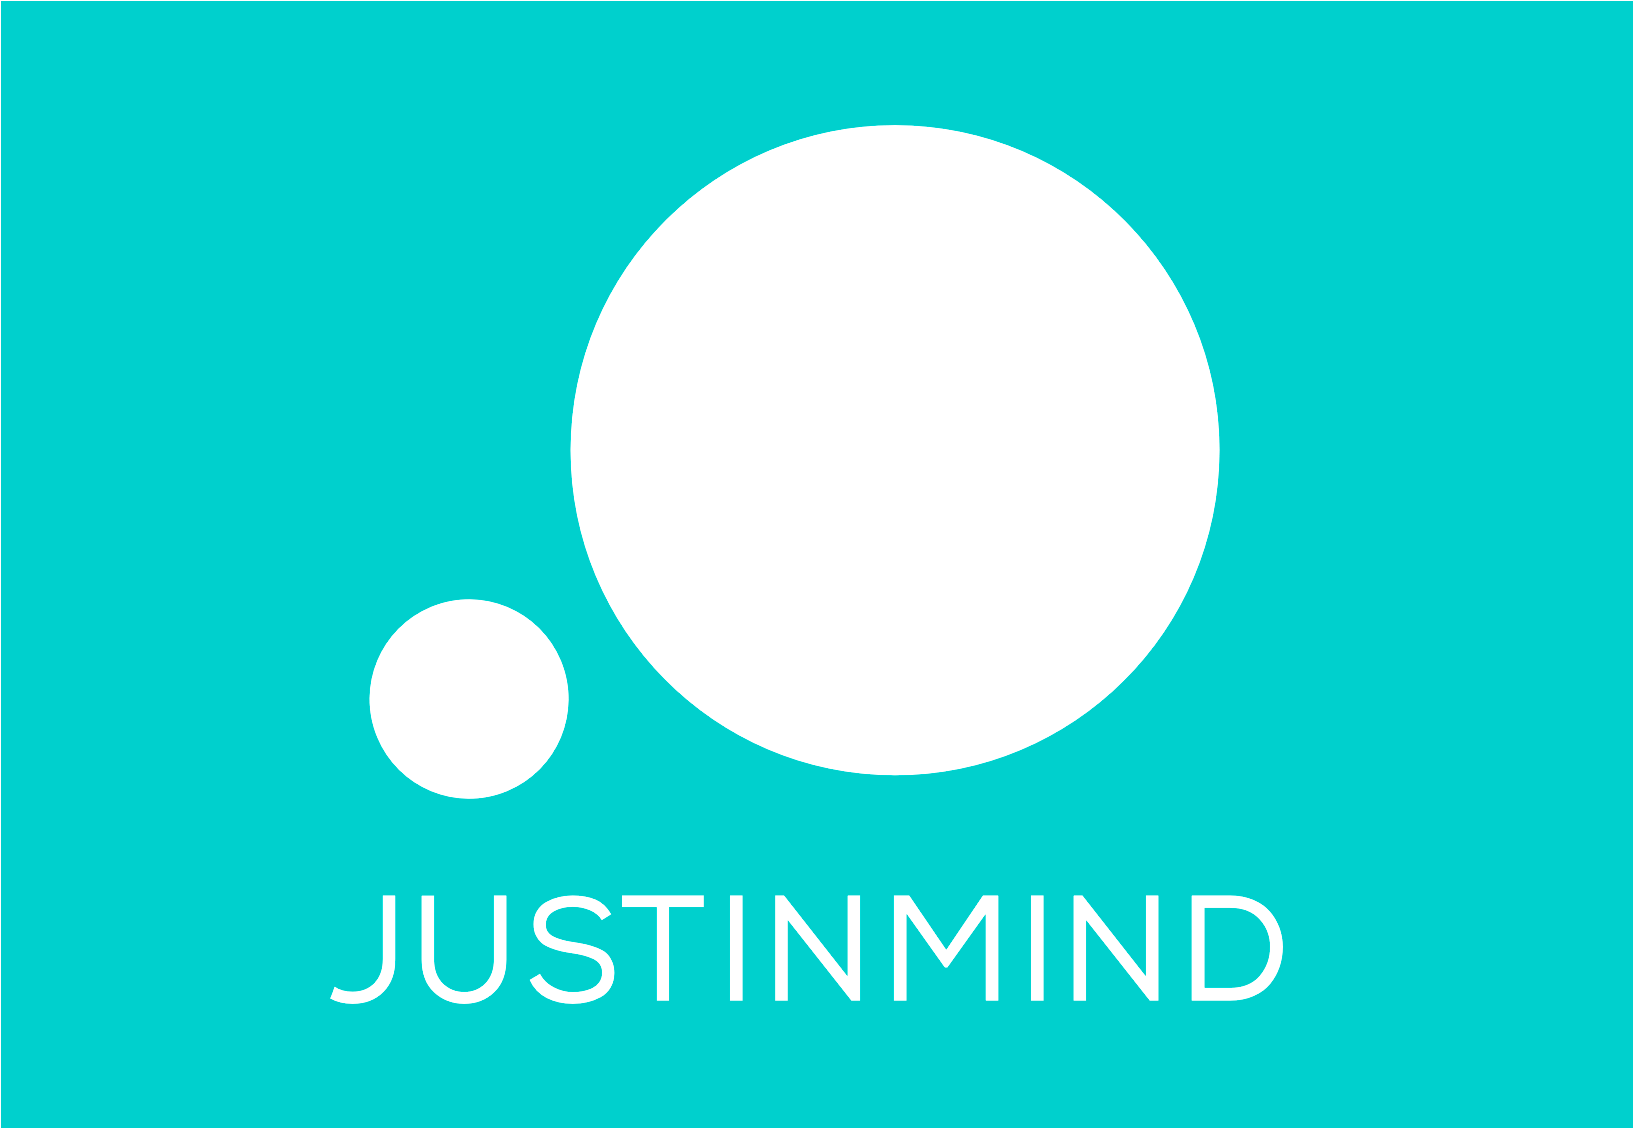 Justinmind stacked logo (inverted version)